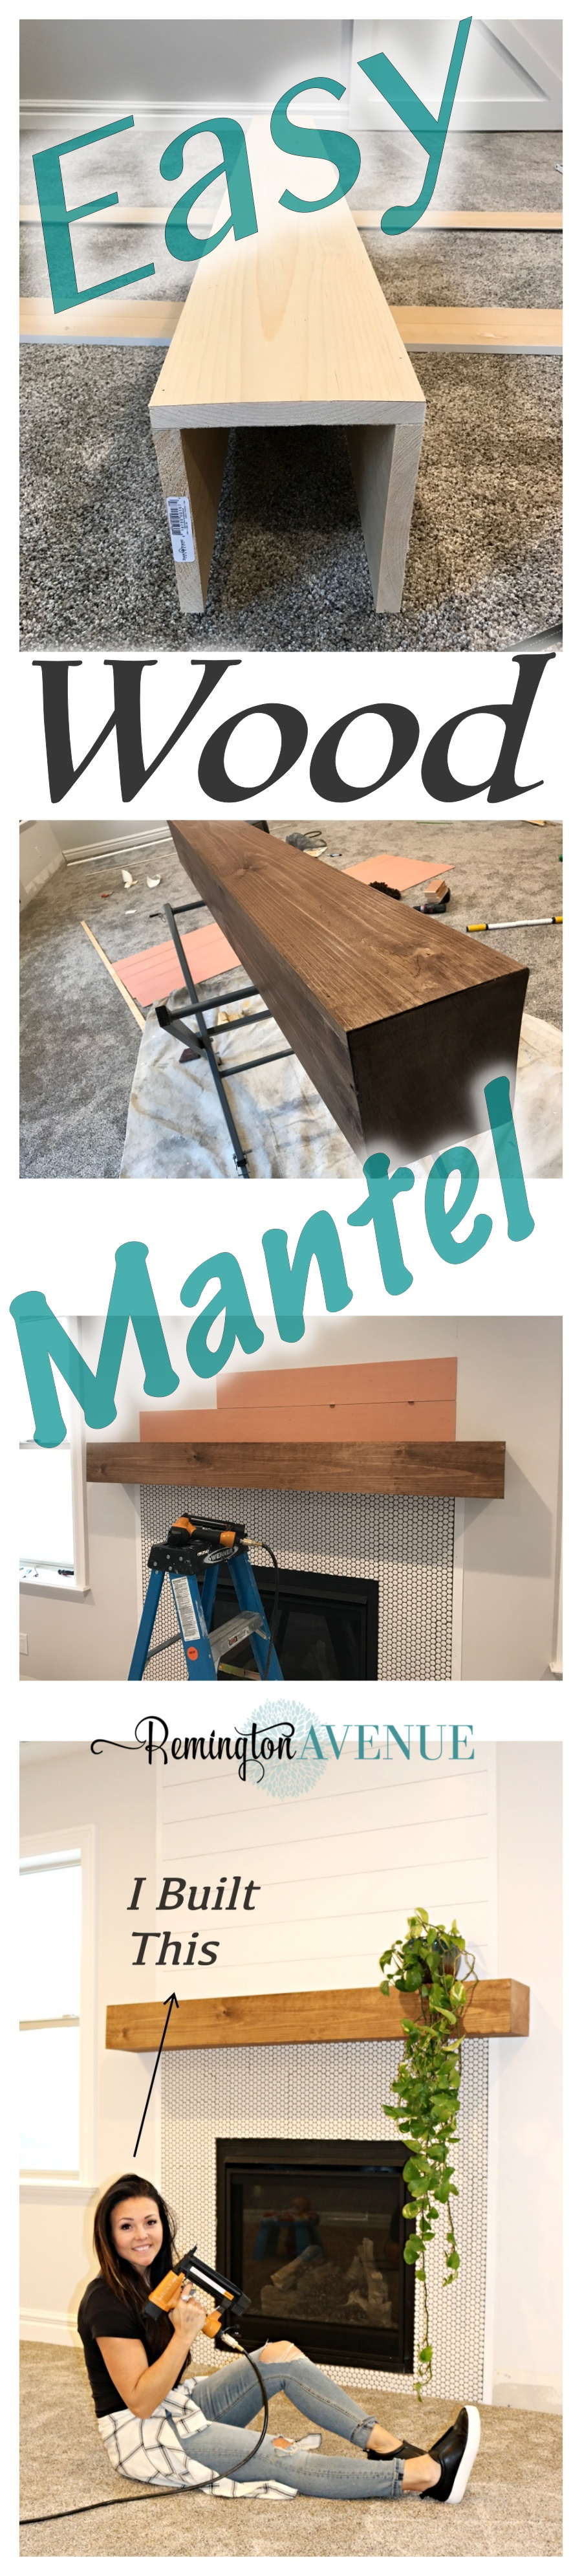 Easy diy wood mantel remington avenue where i share spaces in my home and diy projects daily if you liked this tutorial please pin the image below and help me share it with more friends solutioingenieria Image collections